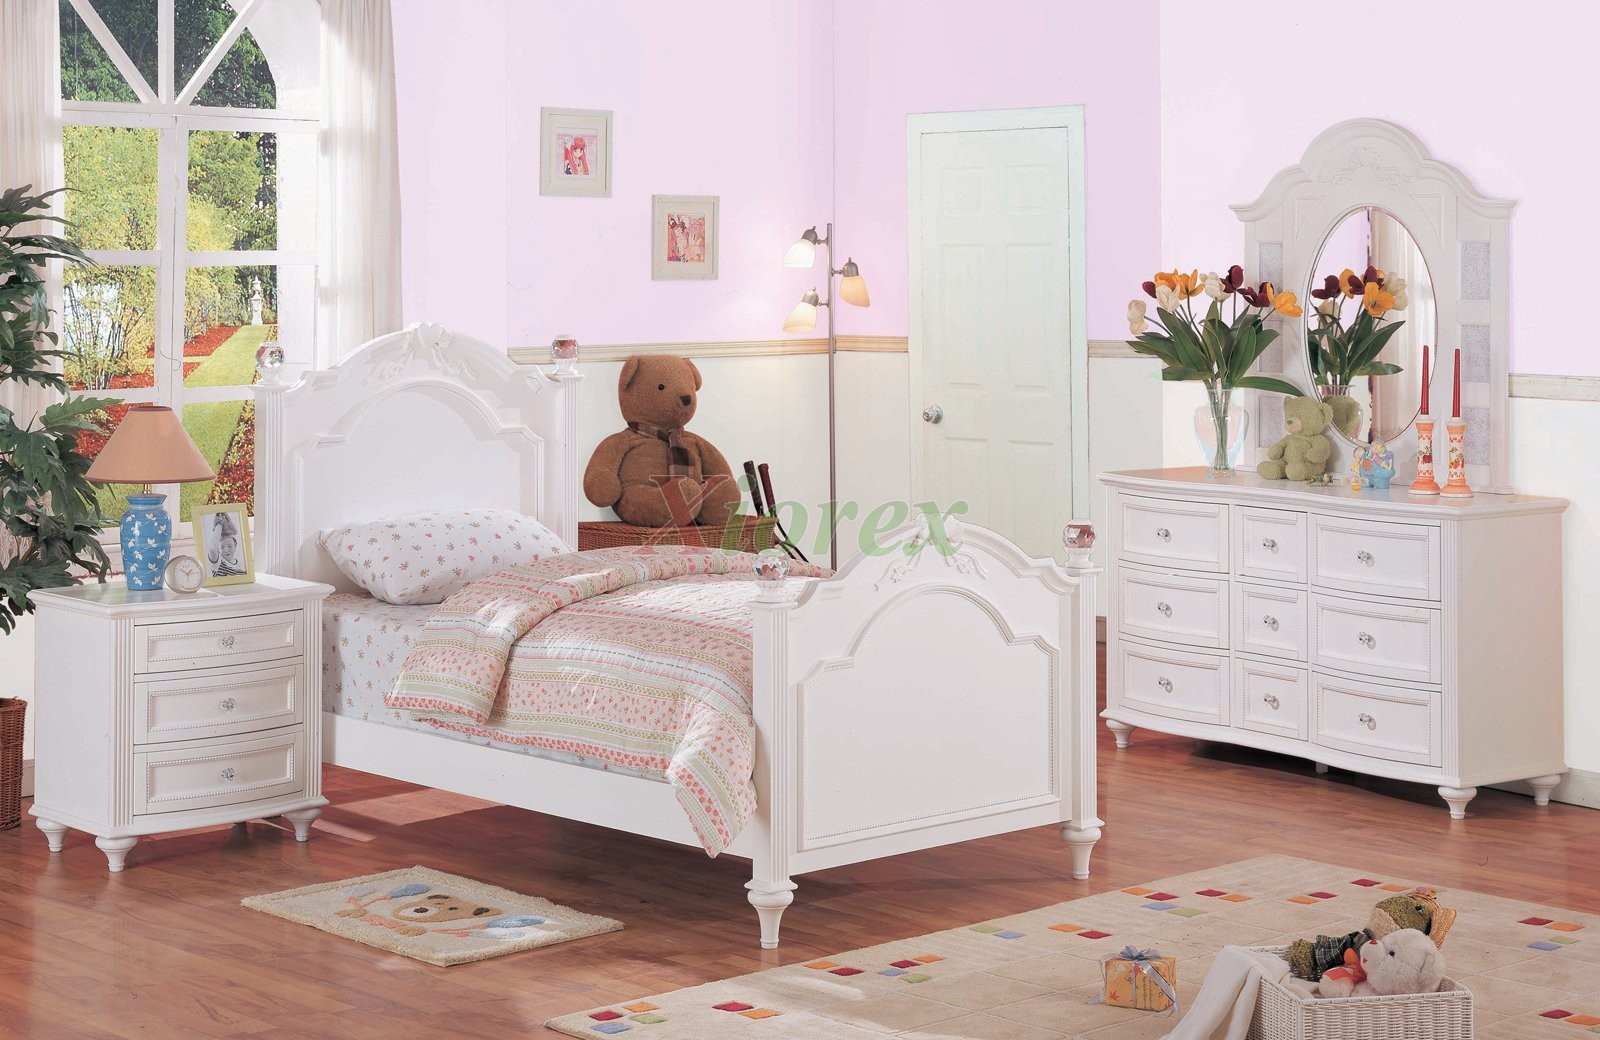 Outstanding Ashley Furniture Kids Bedroom Sets White 1600 x 1040 · 330 kB · jpeg